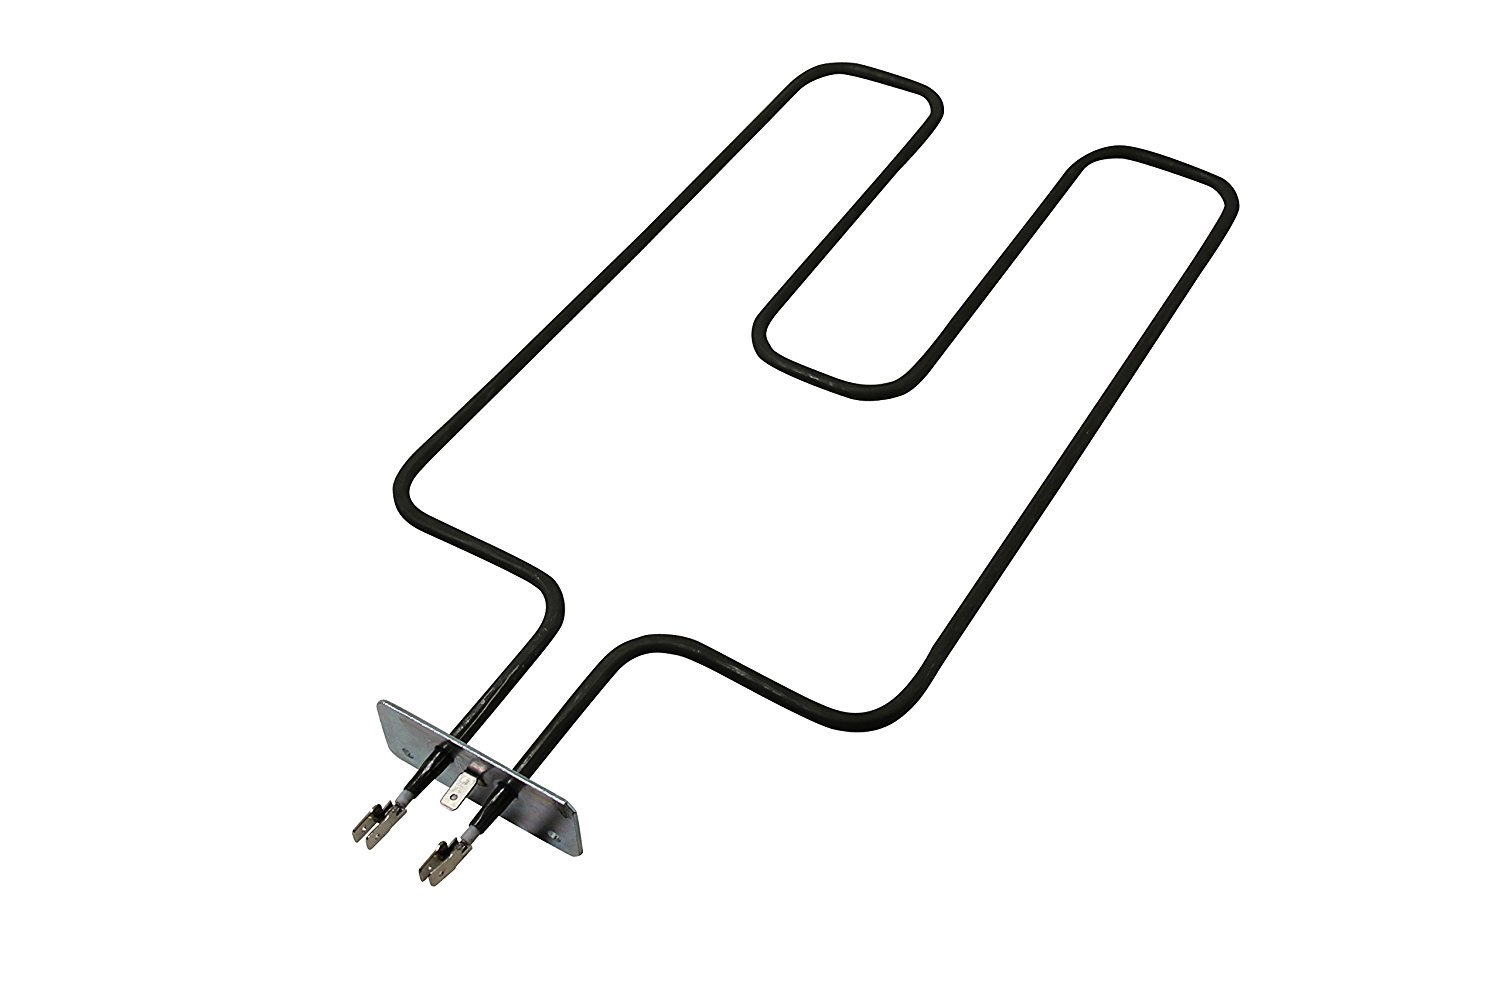 Oven//Oven Heater Element for Leisure Oven Equivalent to 462920017